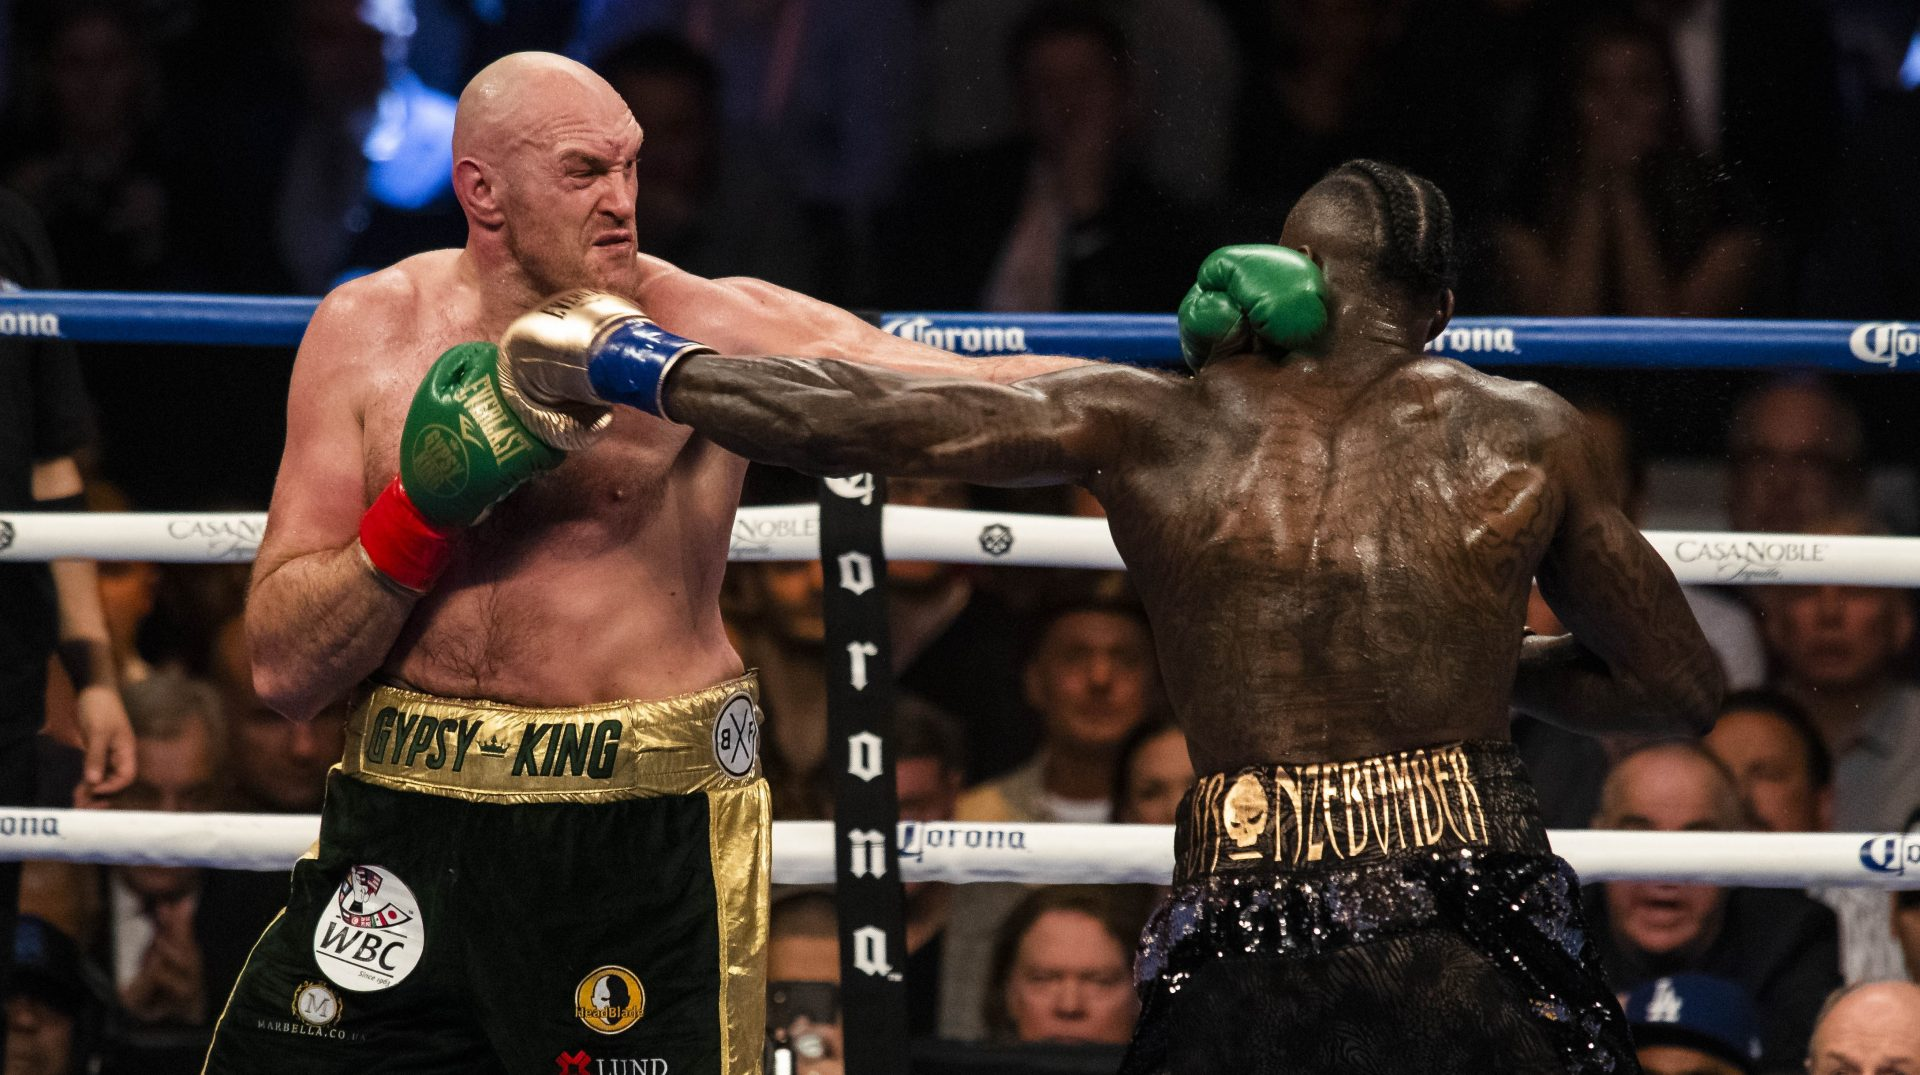 Deontay Wilder vs Tyson Fury 3 set to take place on December 19 - Tyson Fury